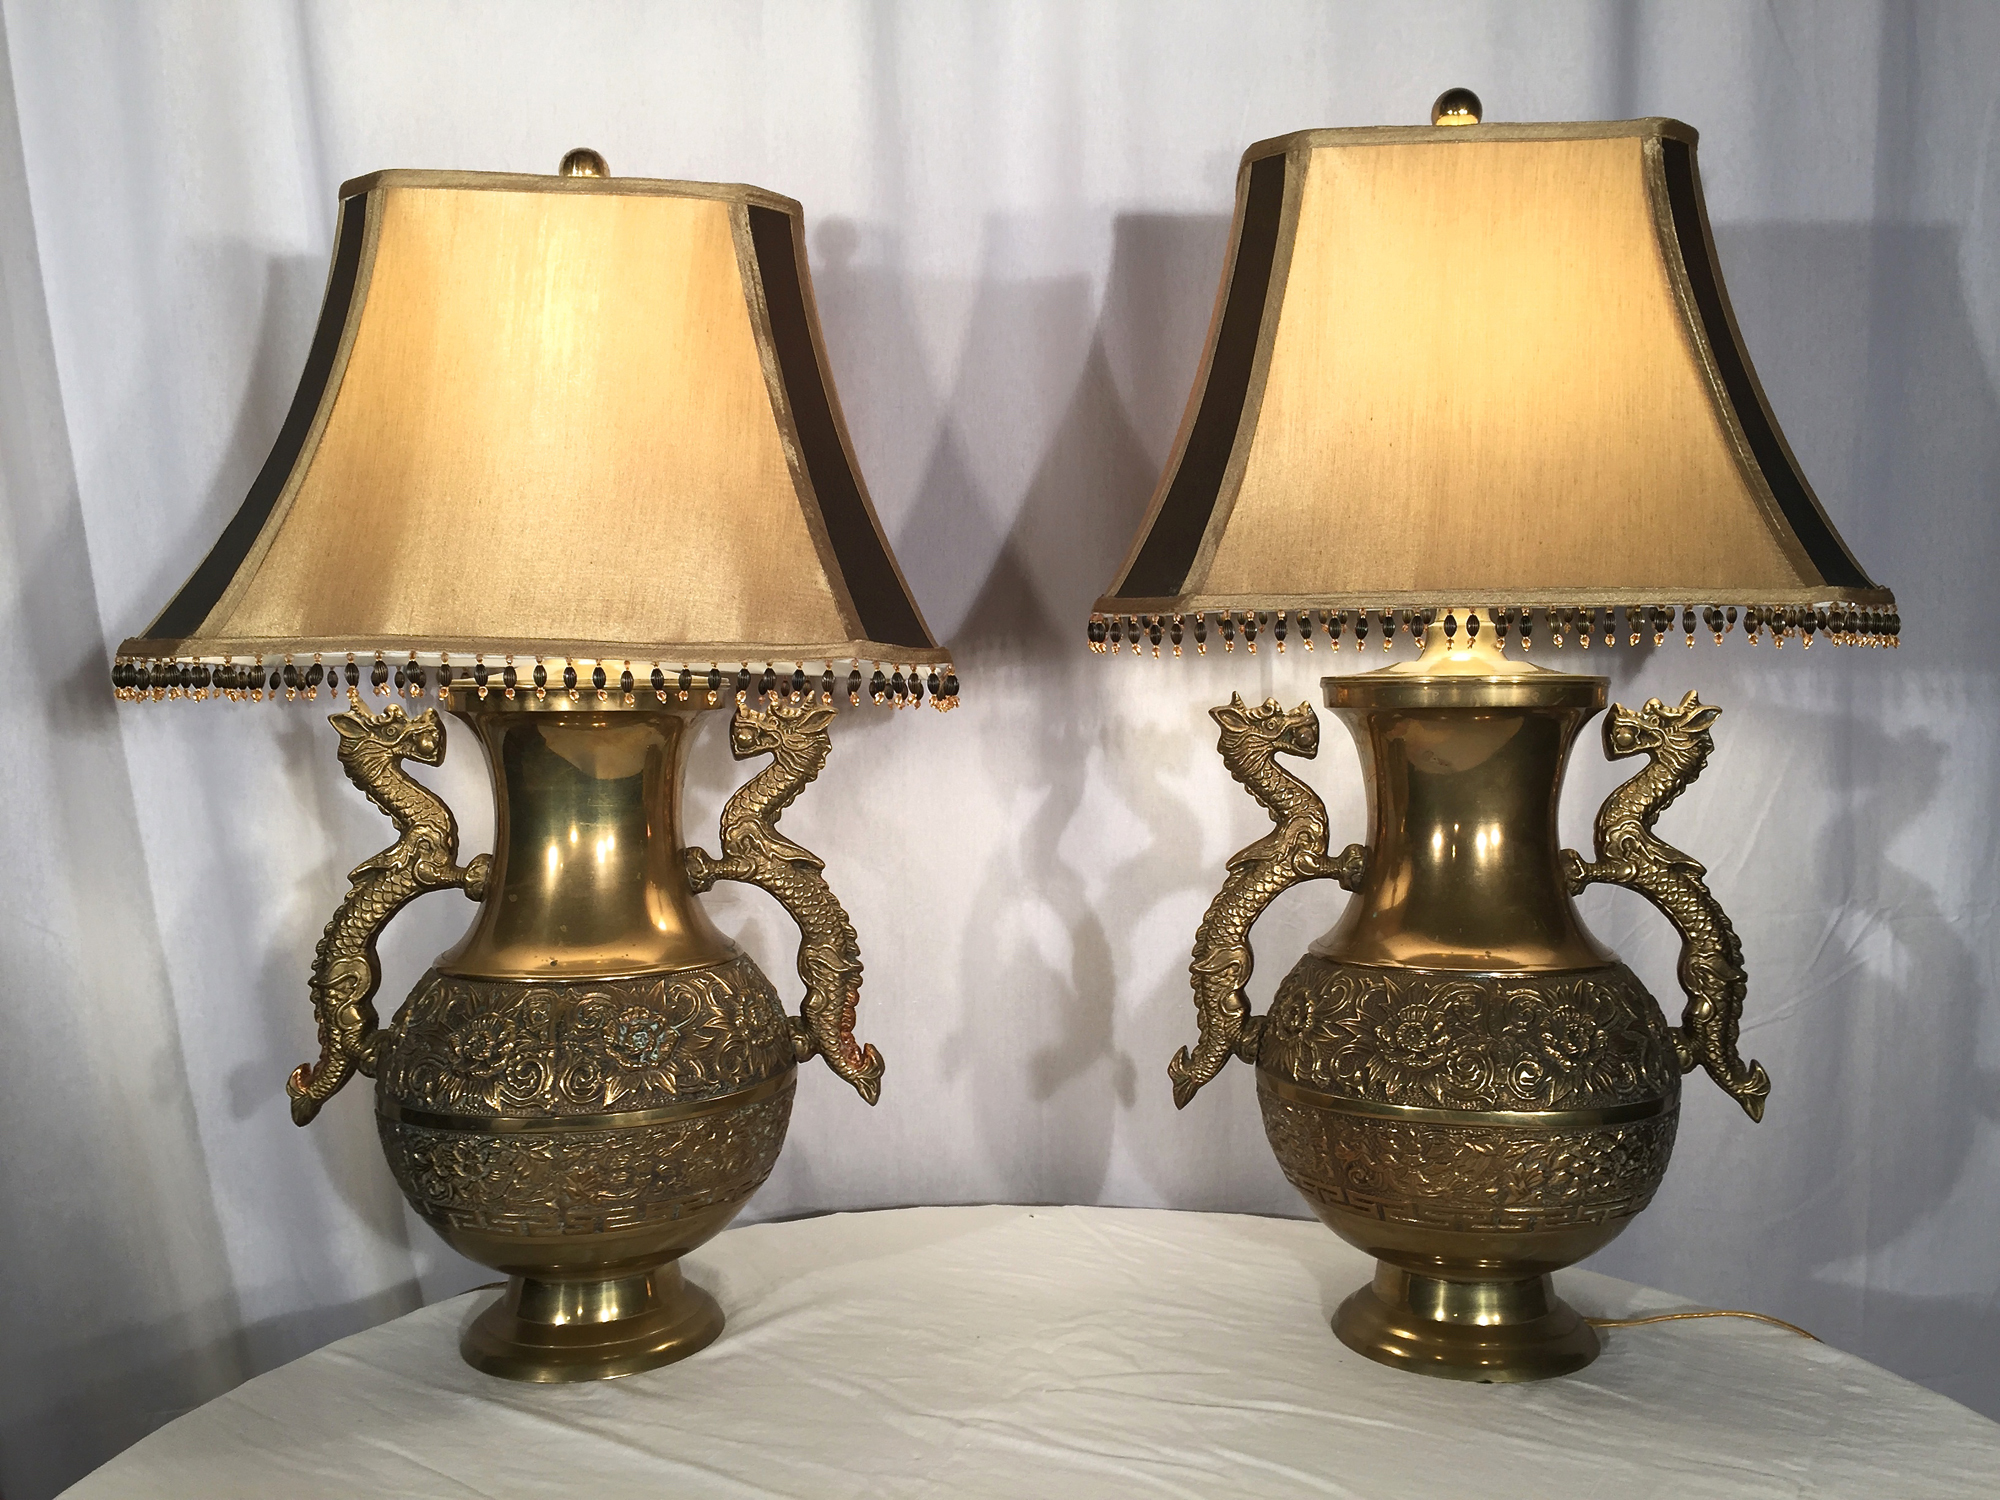 Dragon Lamps For Sale Pair Of French Brass Repoussé Dragon Lamps The Elemental Garden